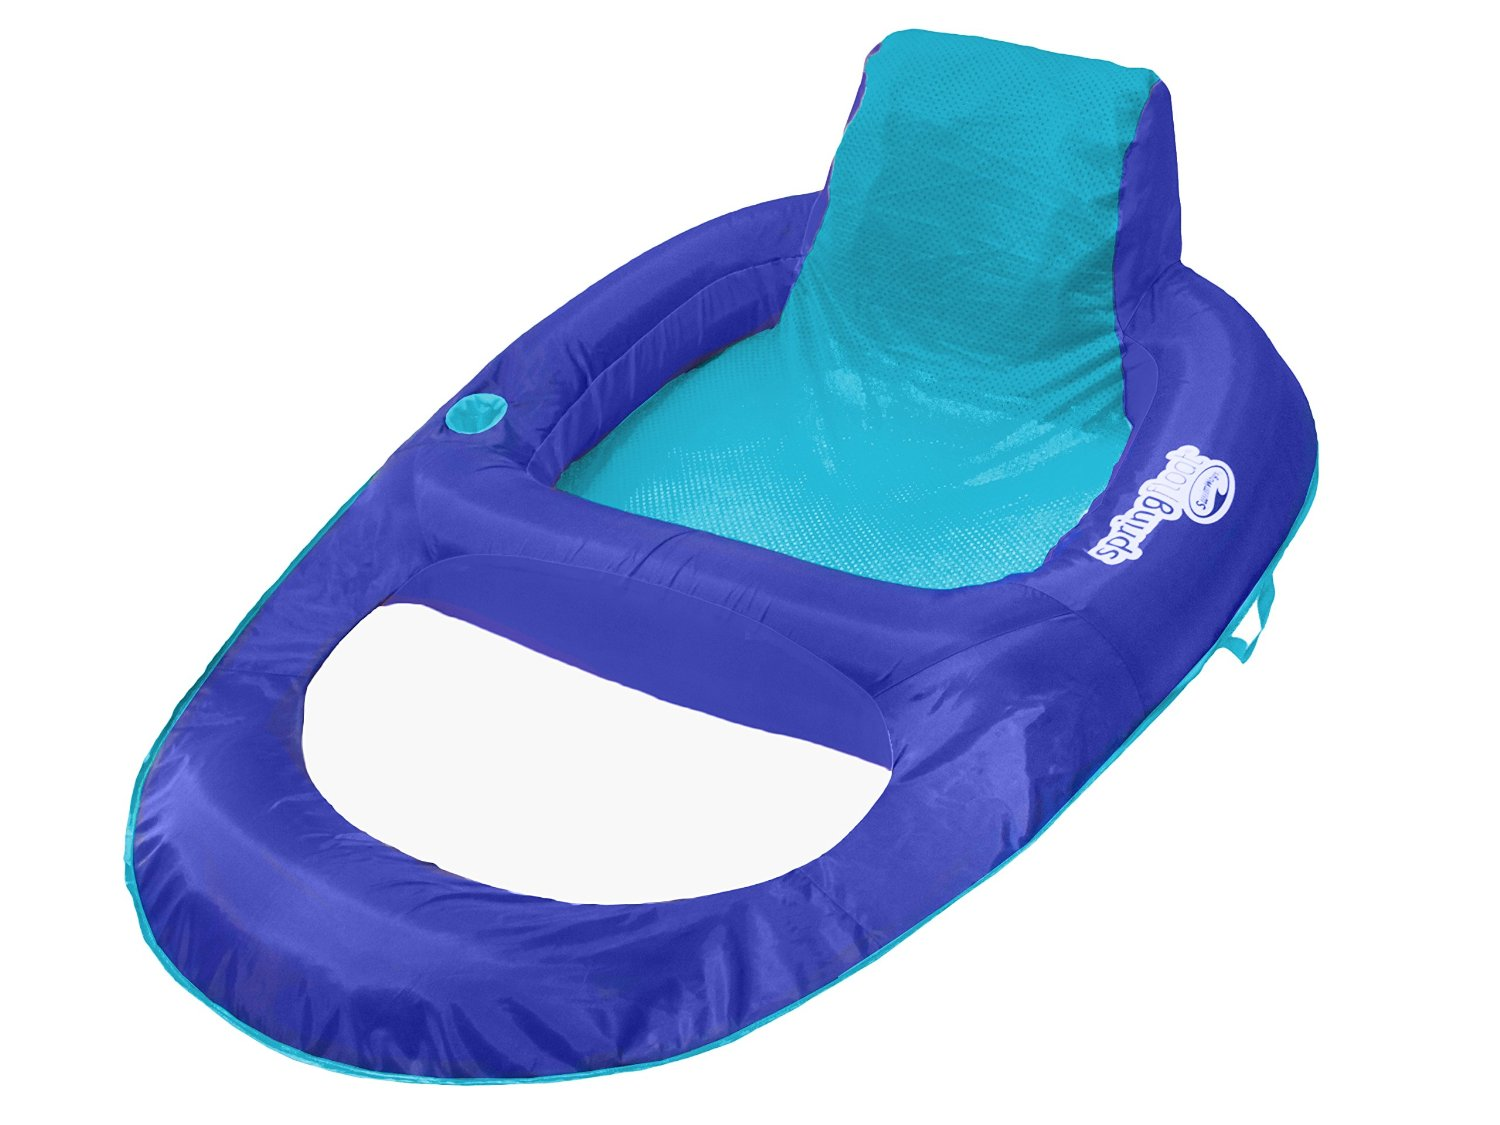 Pool Float Chair 10 Best Swimming Pool Loungers 2018 Top Floating Pool